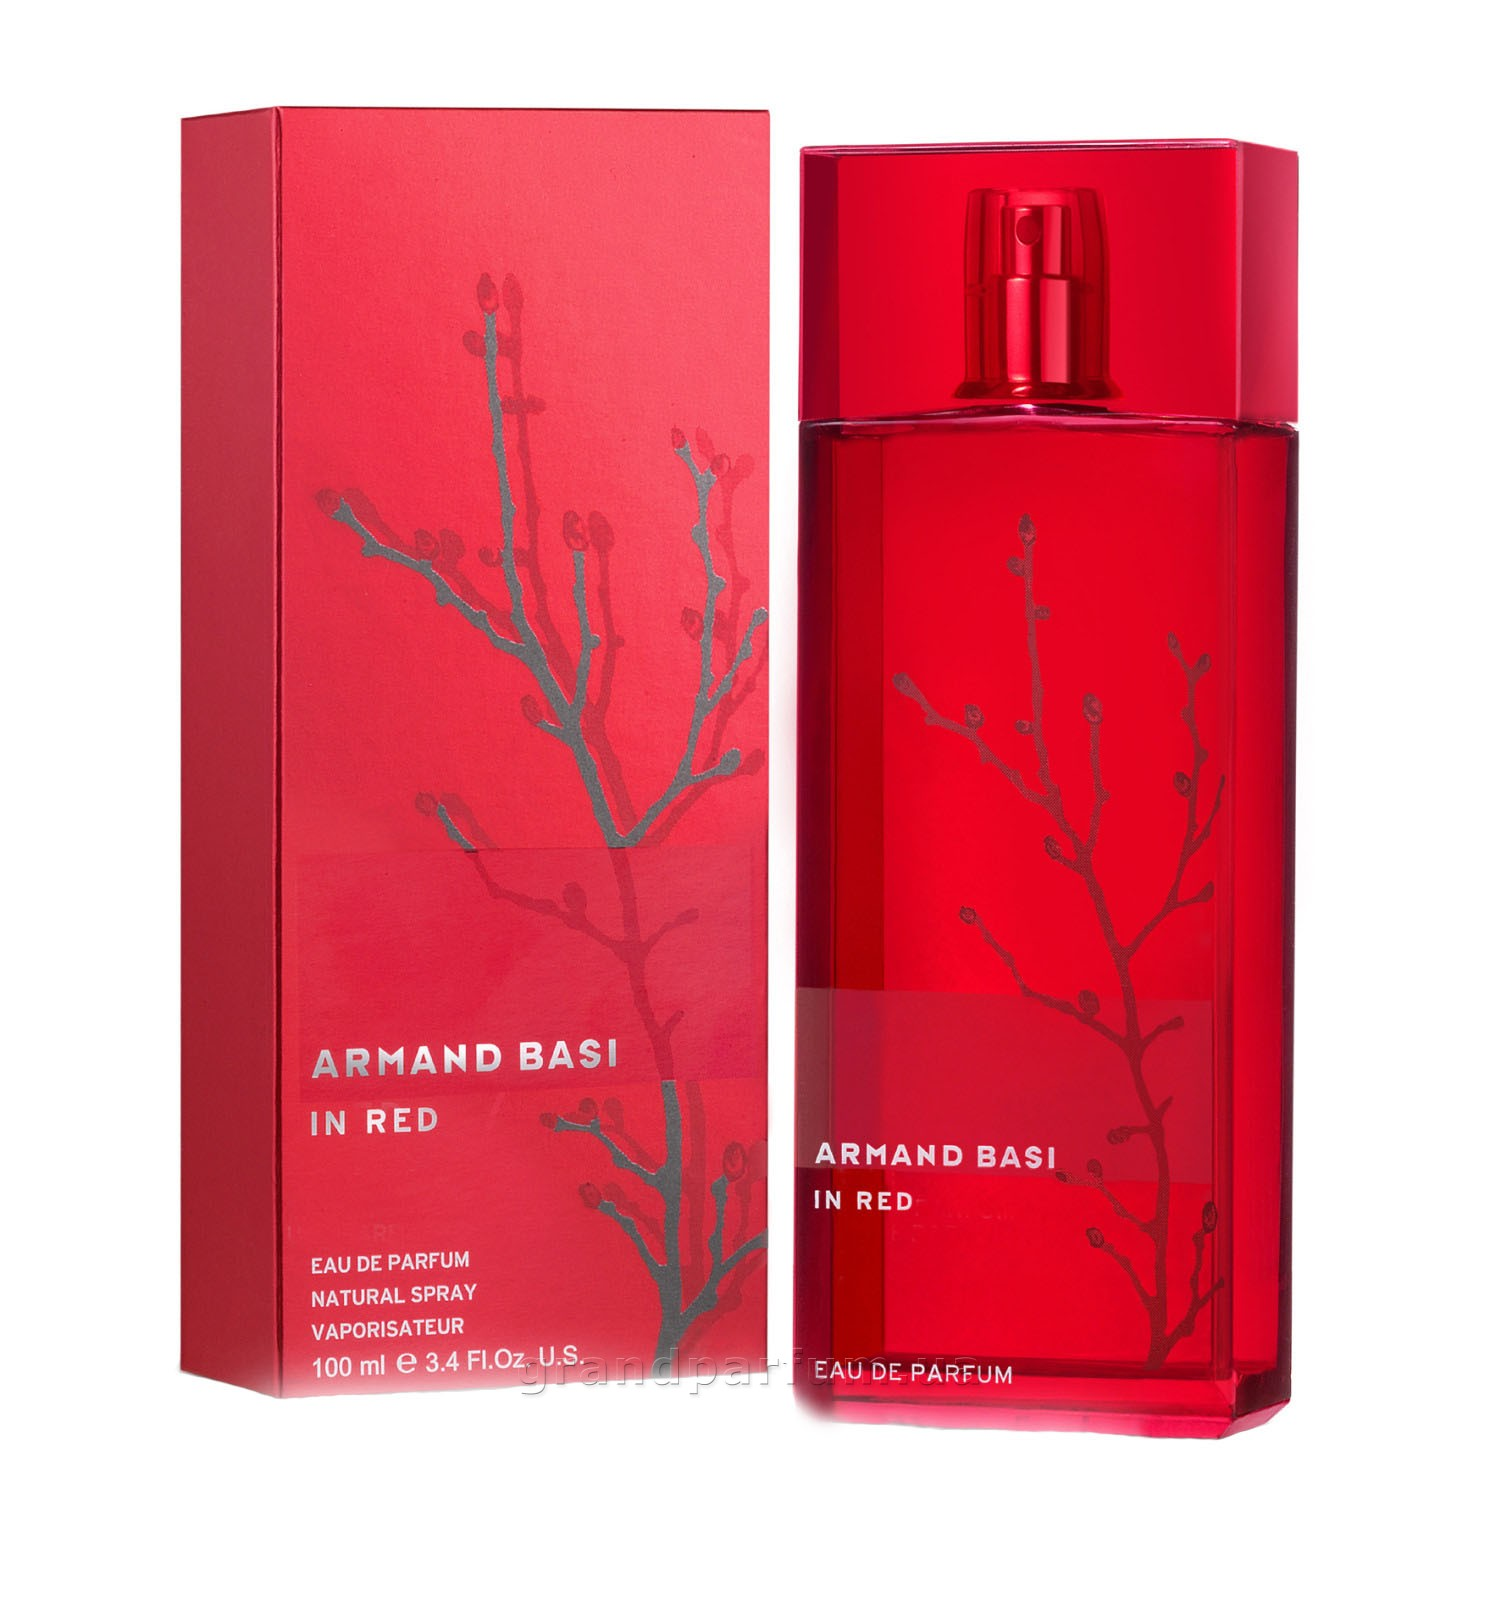 Купить Armand Basi in Red Eau de Parfum от